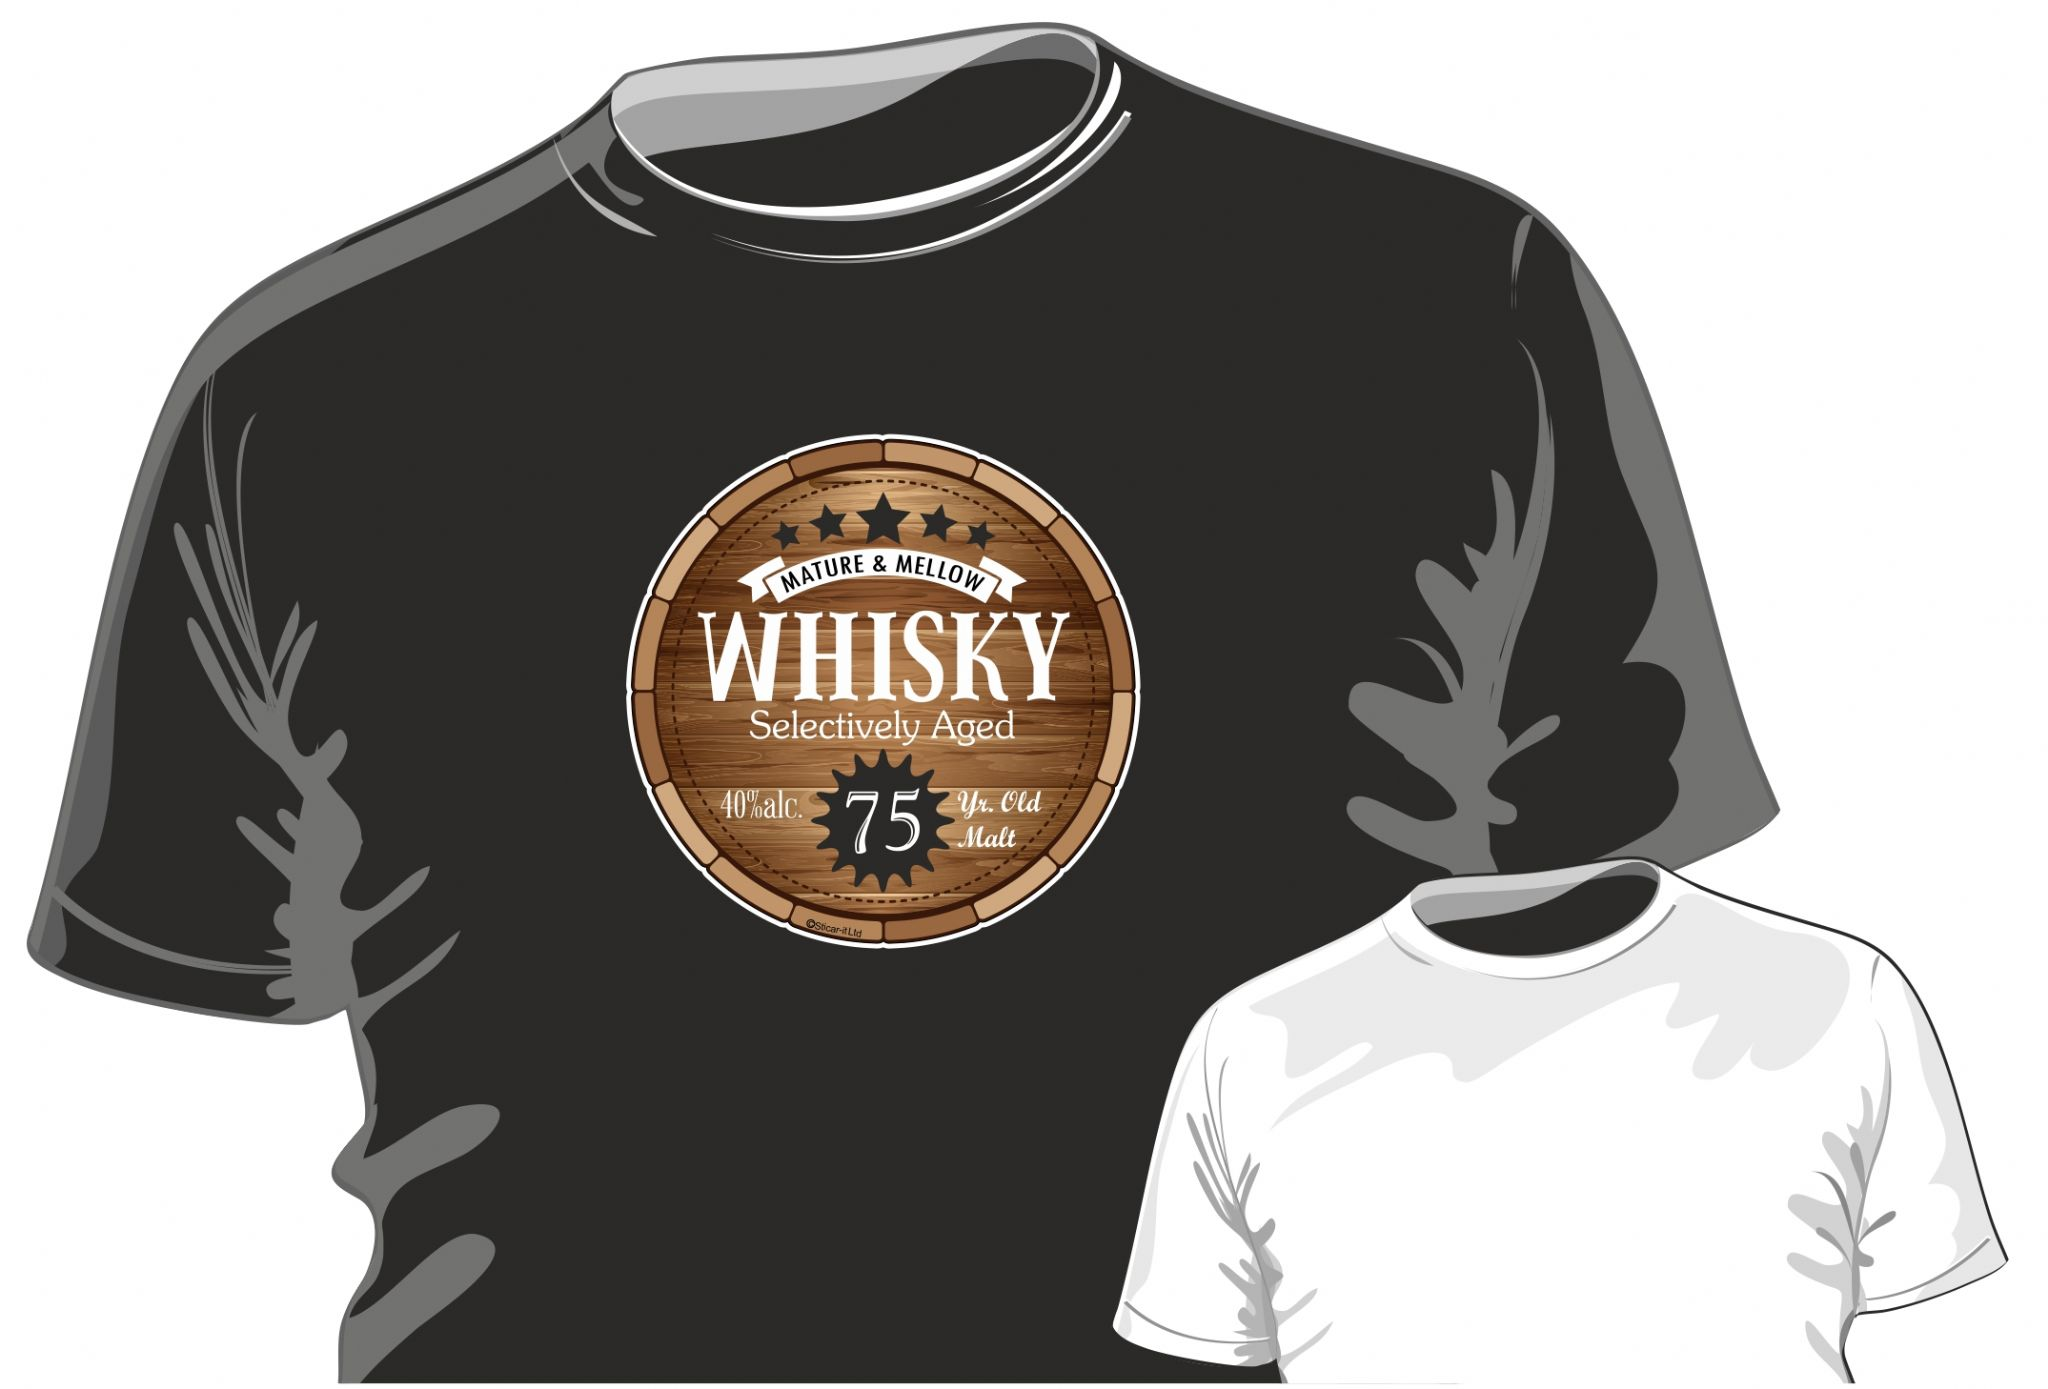 Regular Fit Twitter Instagram Funny 75 Year Old MALT WHISKY Barrel Motif For 75th Birthday Occasion Anniversary Gift Mens Or